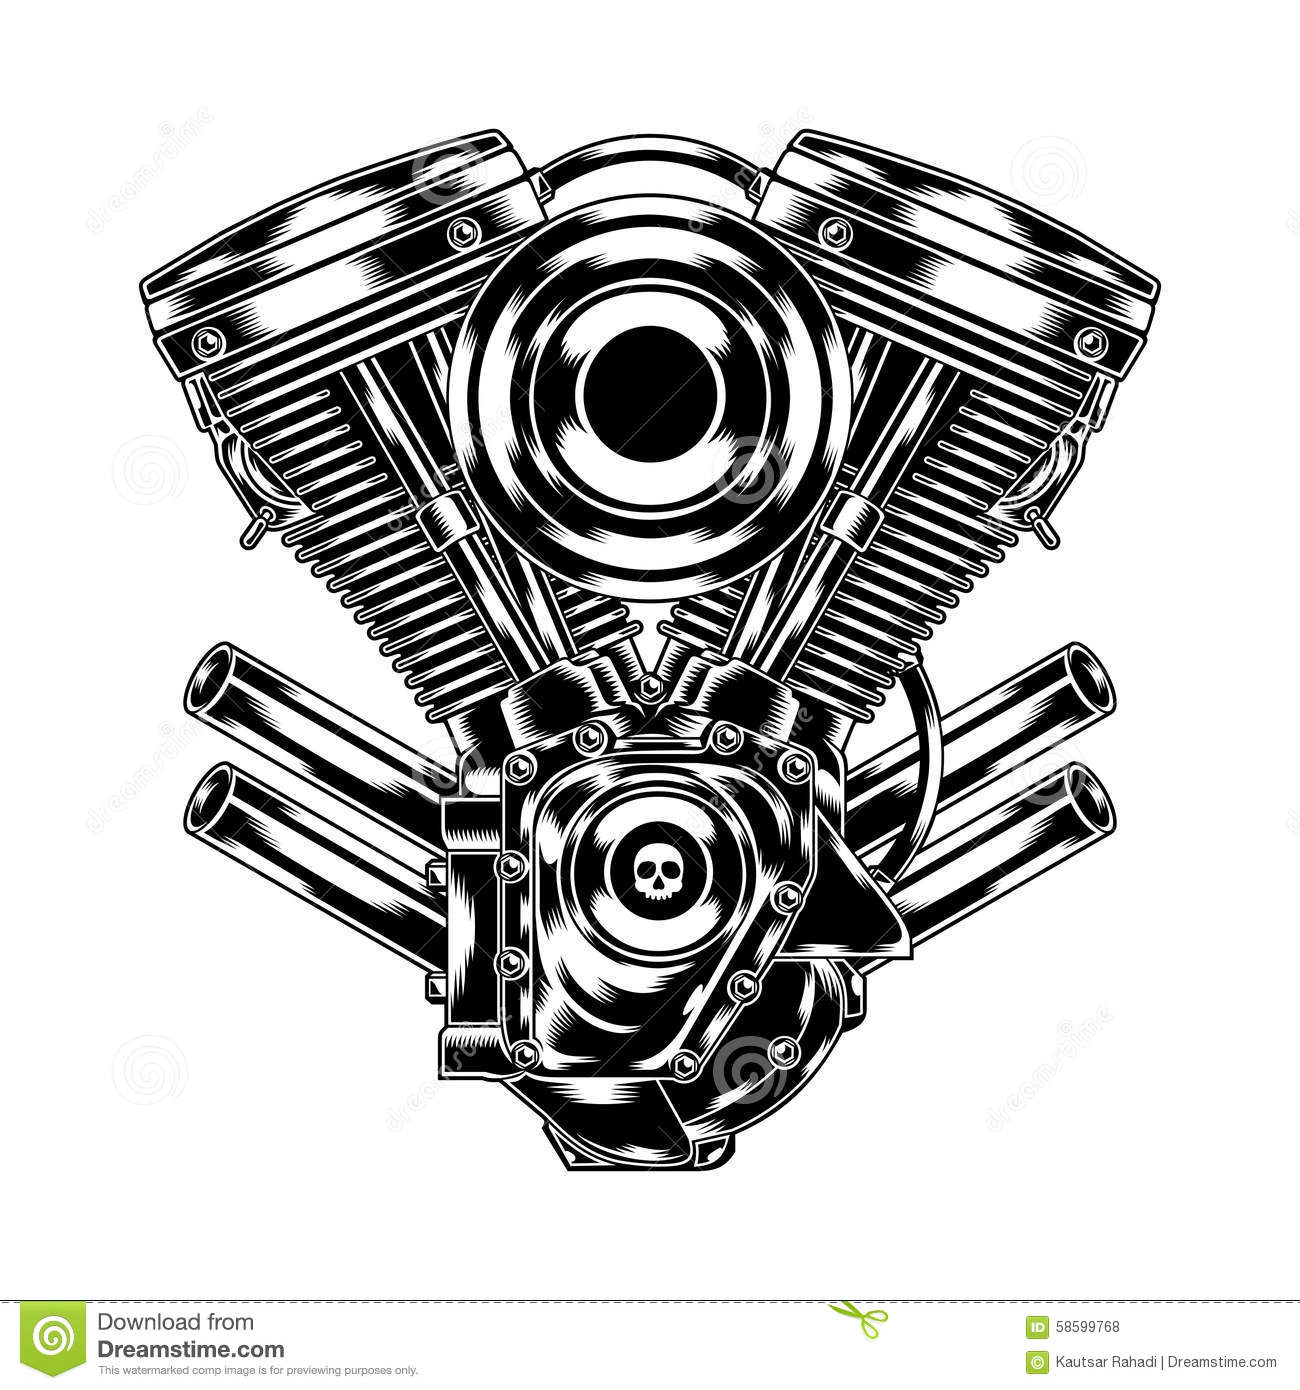 Illustration of motorcycle engine in chrome look. Suitable for graphic ...